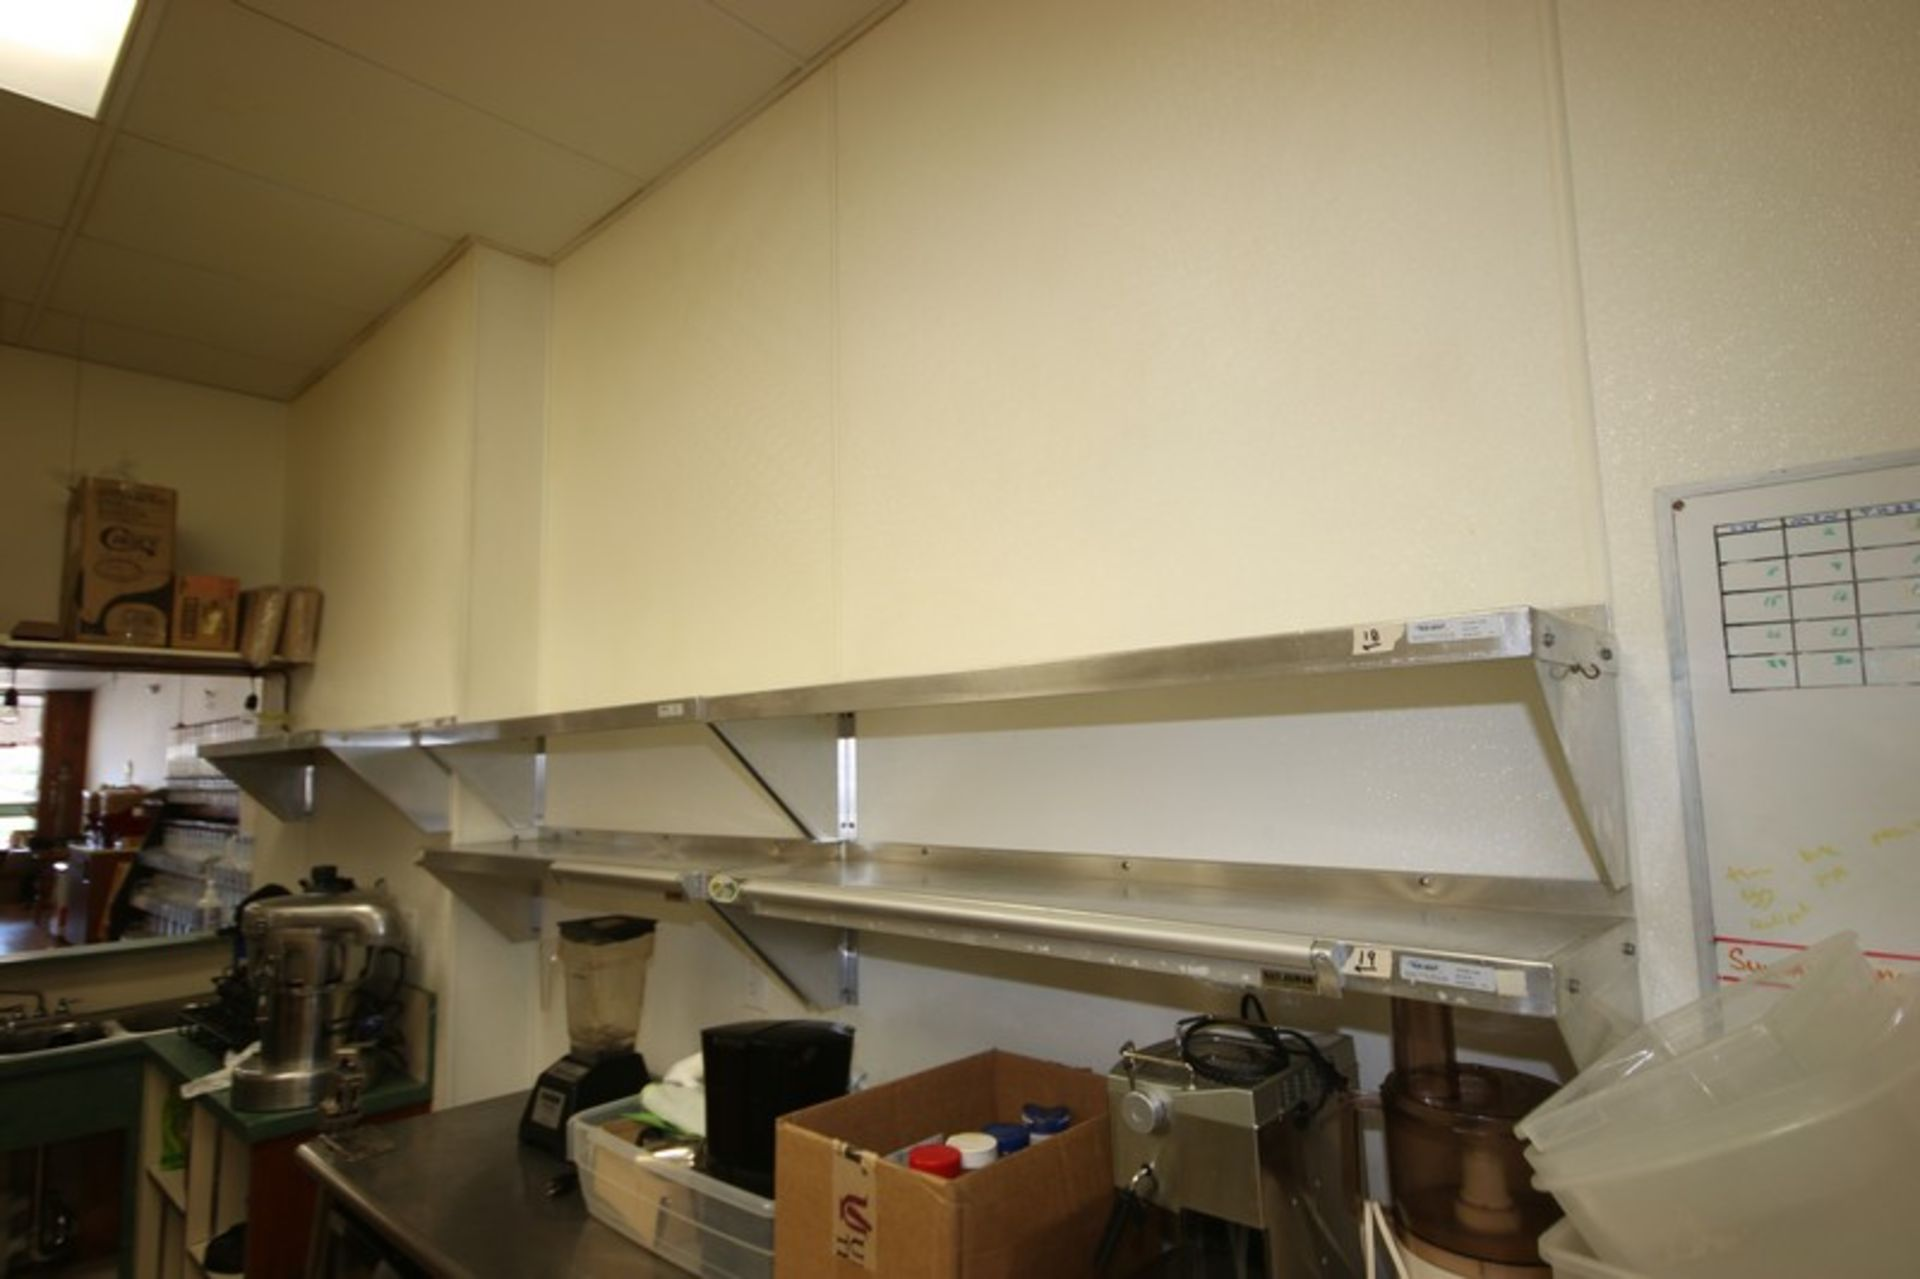 """Win-Holt S/S Shelves, Shelf Dims.: Aprox. 48"""" L x 12"""" W, Wall Mounted (Located in McMurray, PA) ("""